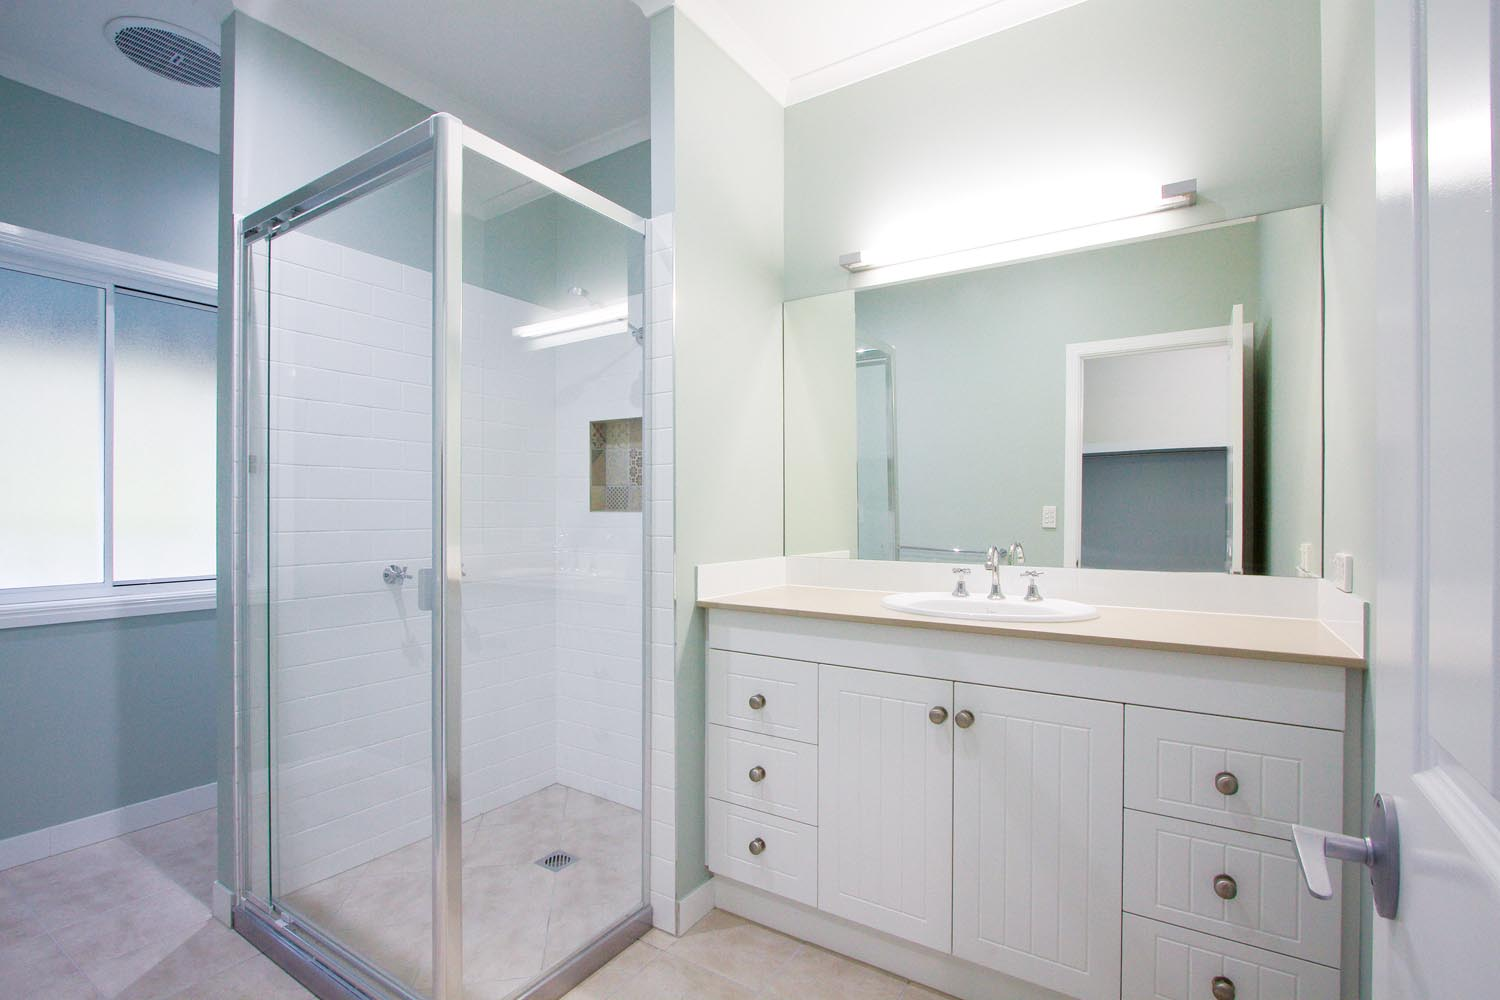 More for less: a classic Queenslander home - bathroom interior